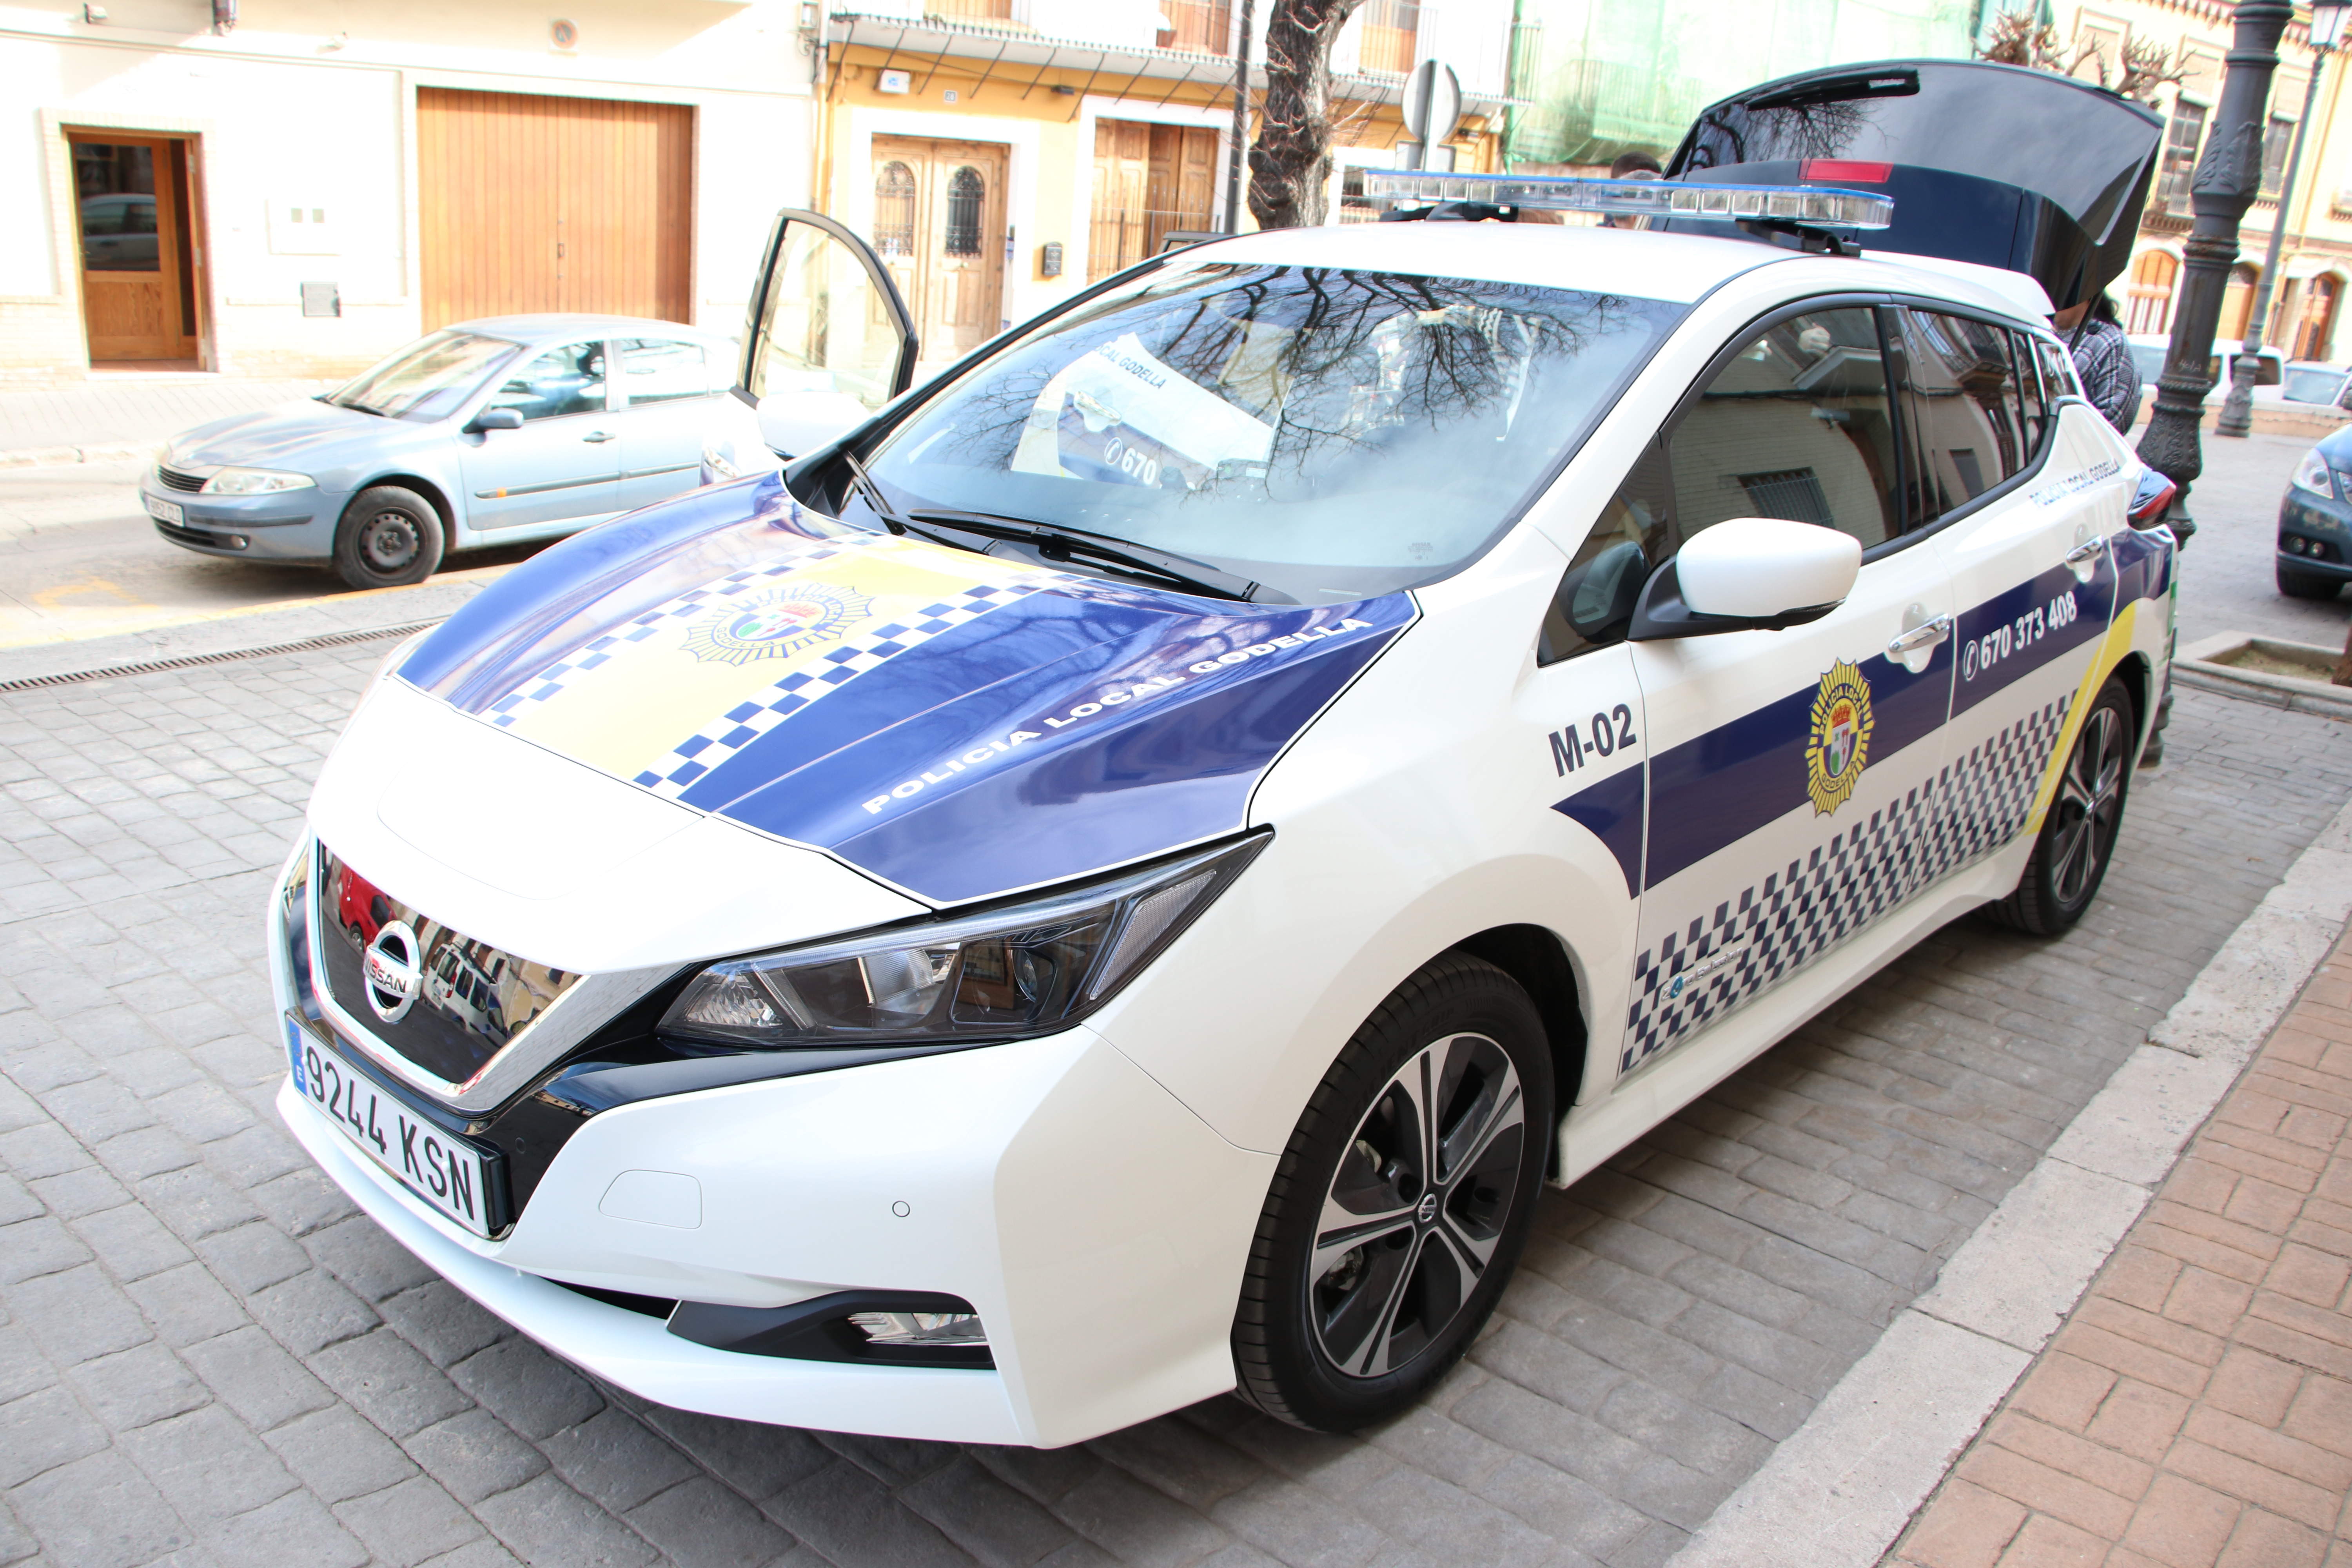 Nissan-Leaf-Policia-Local-Godella